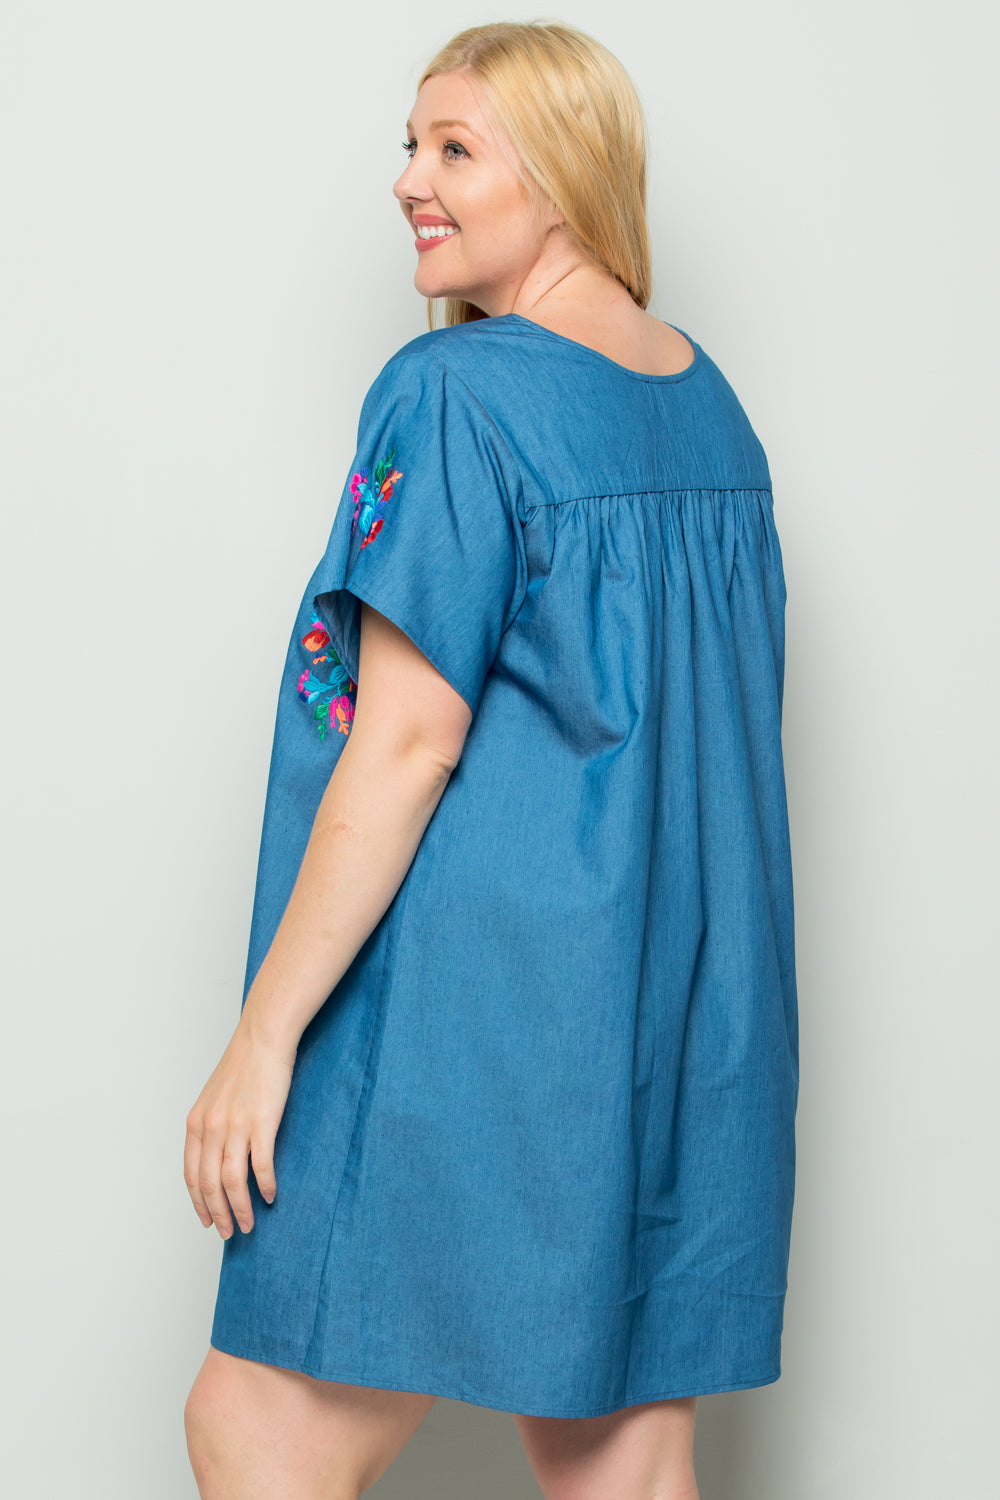 WD5263 Embroidery Denim Dress